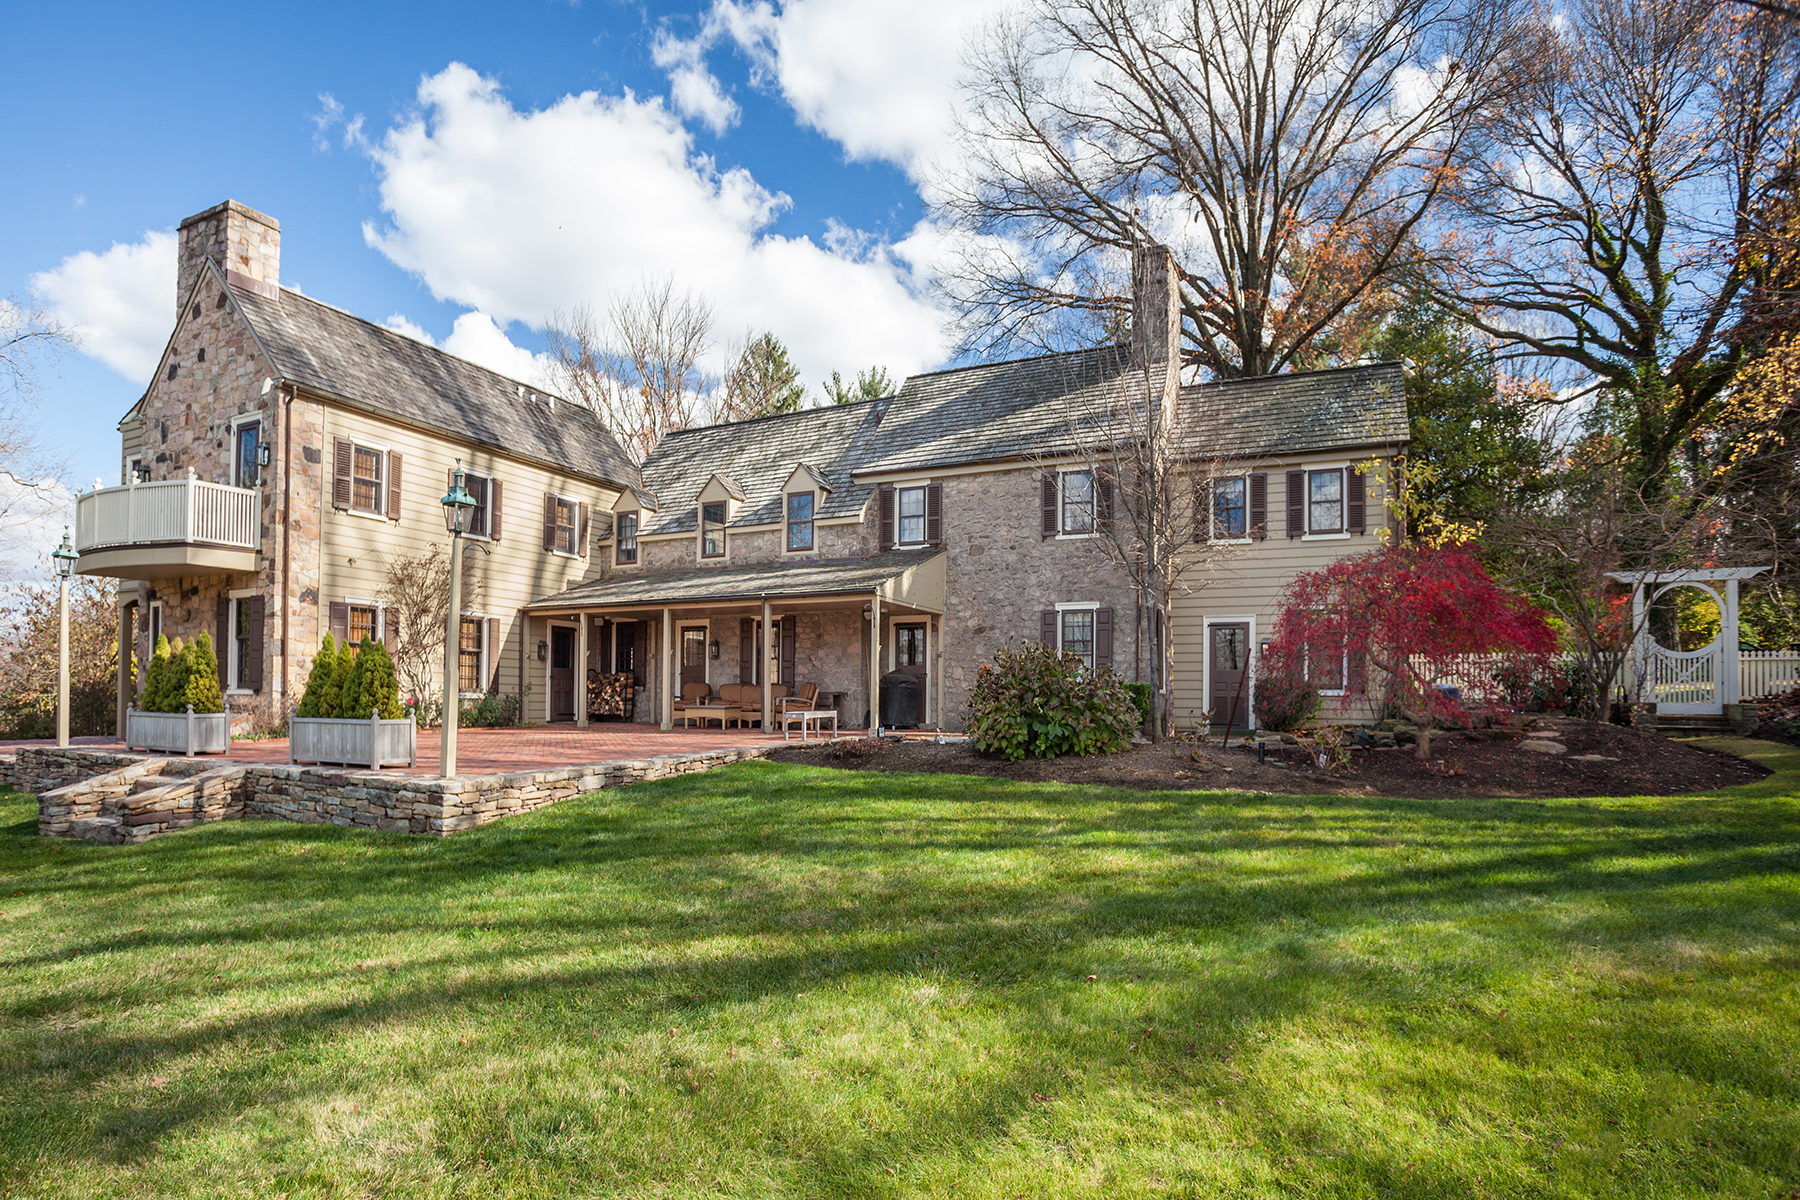 Single Family Home for Sale at Meadowbrook 1560 Warner Road Meadowbrook, Pennsylvania 19046 United States